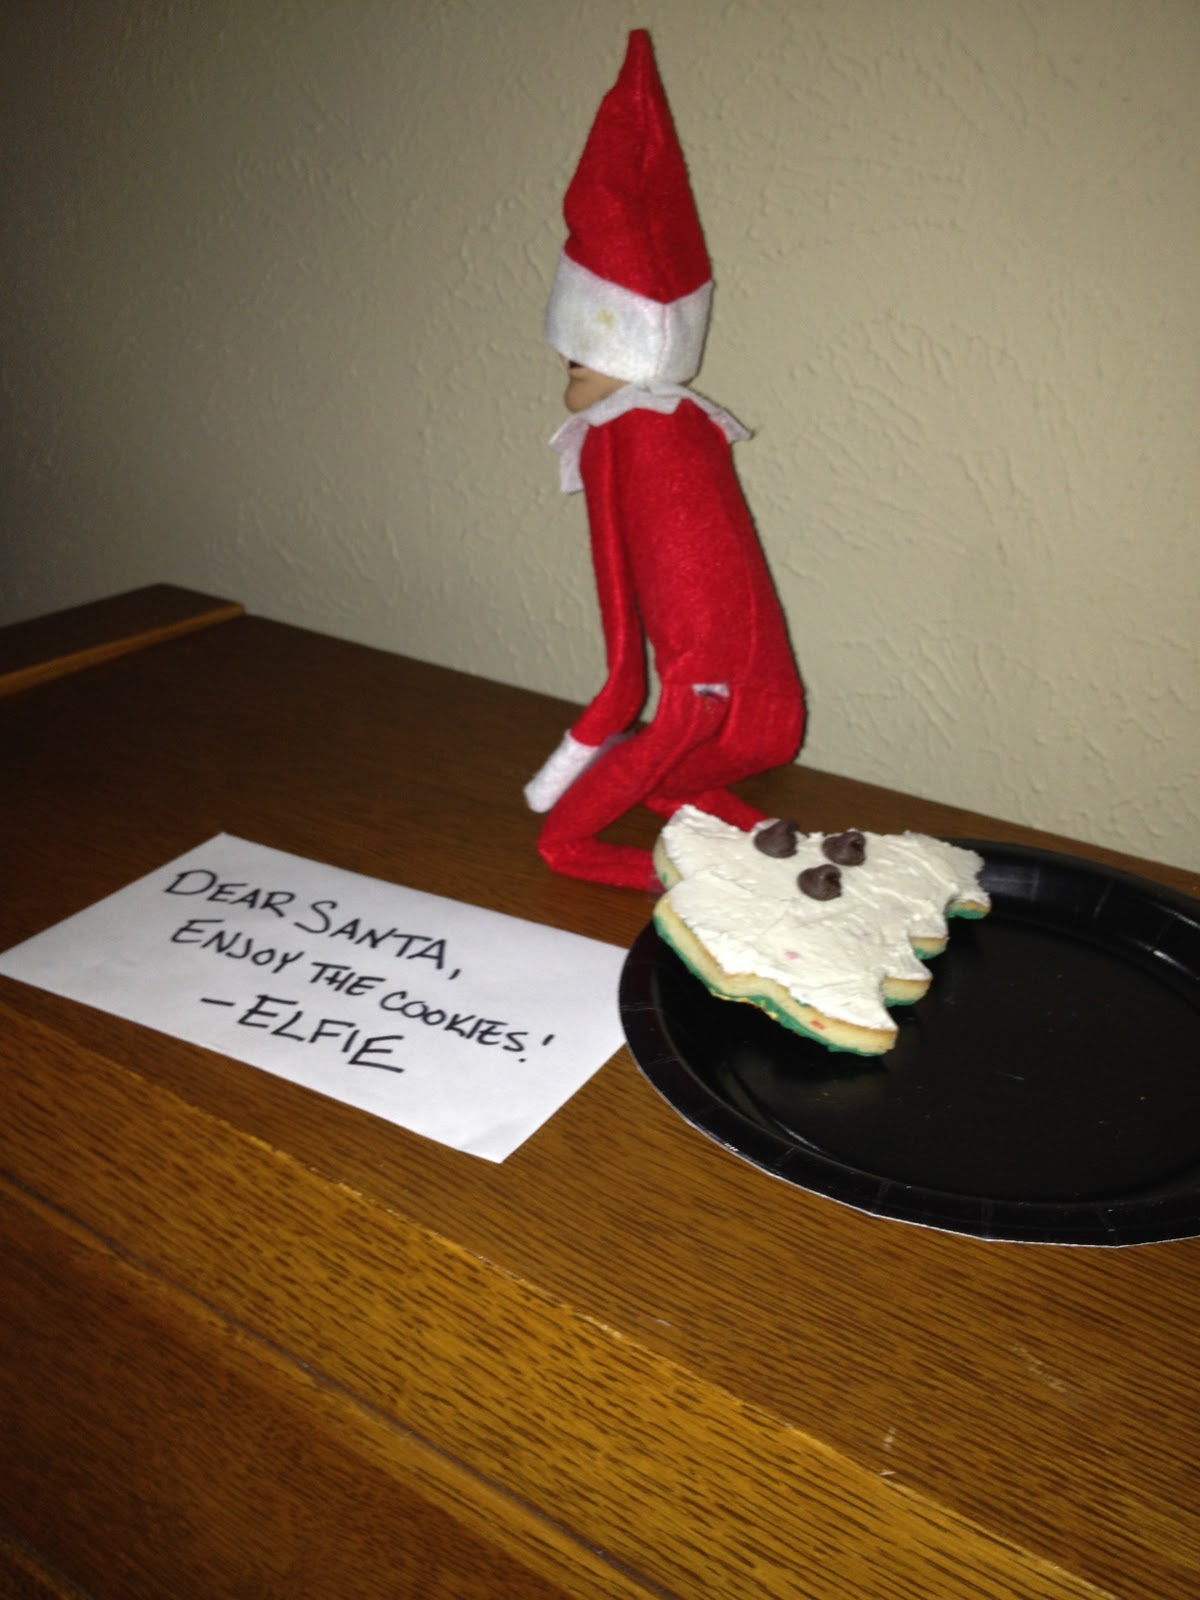 The Most Inappropriate Elf On A Shelf Ideas Someecards